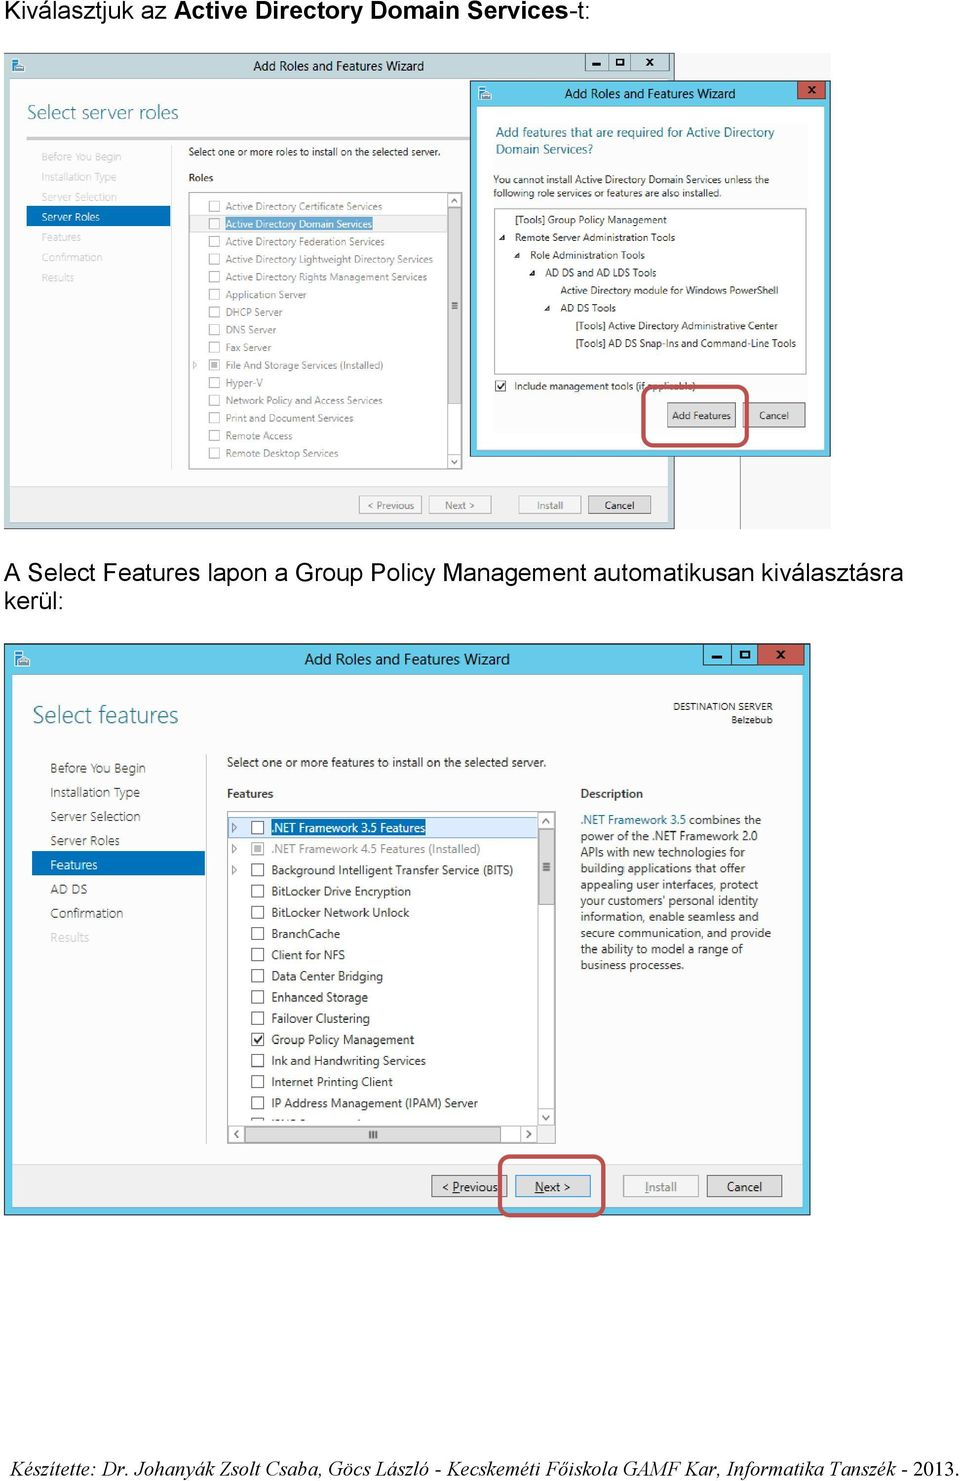 Features lapon a Group Policy